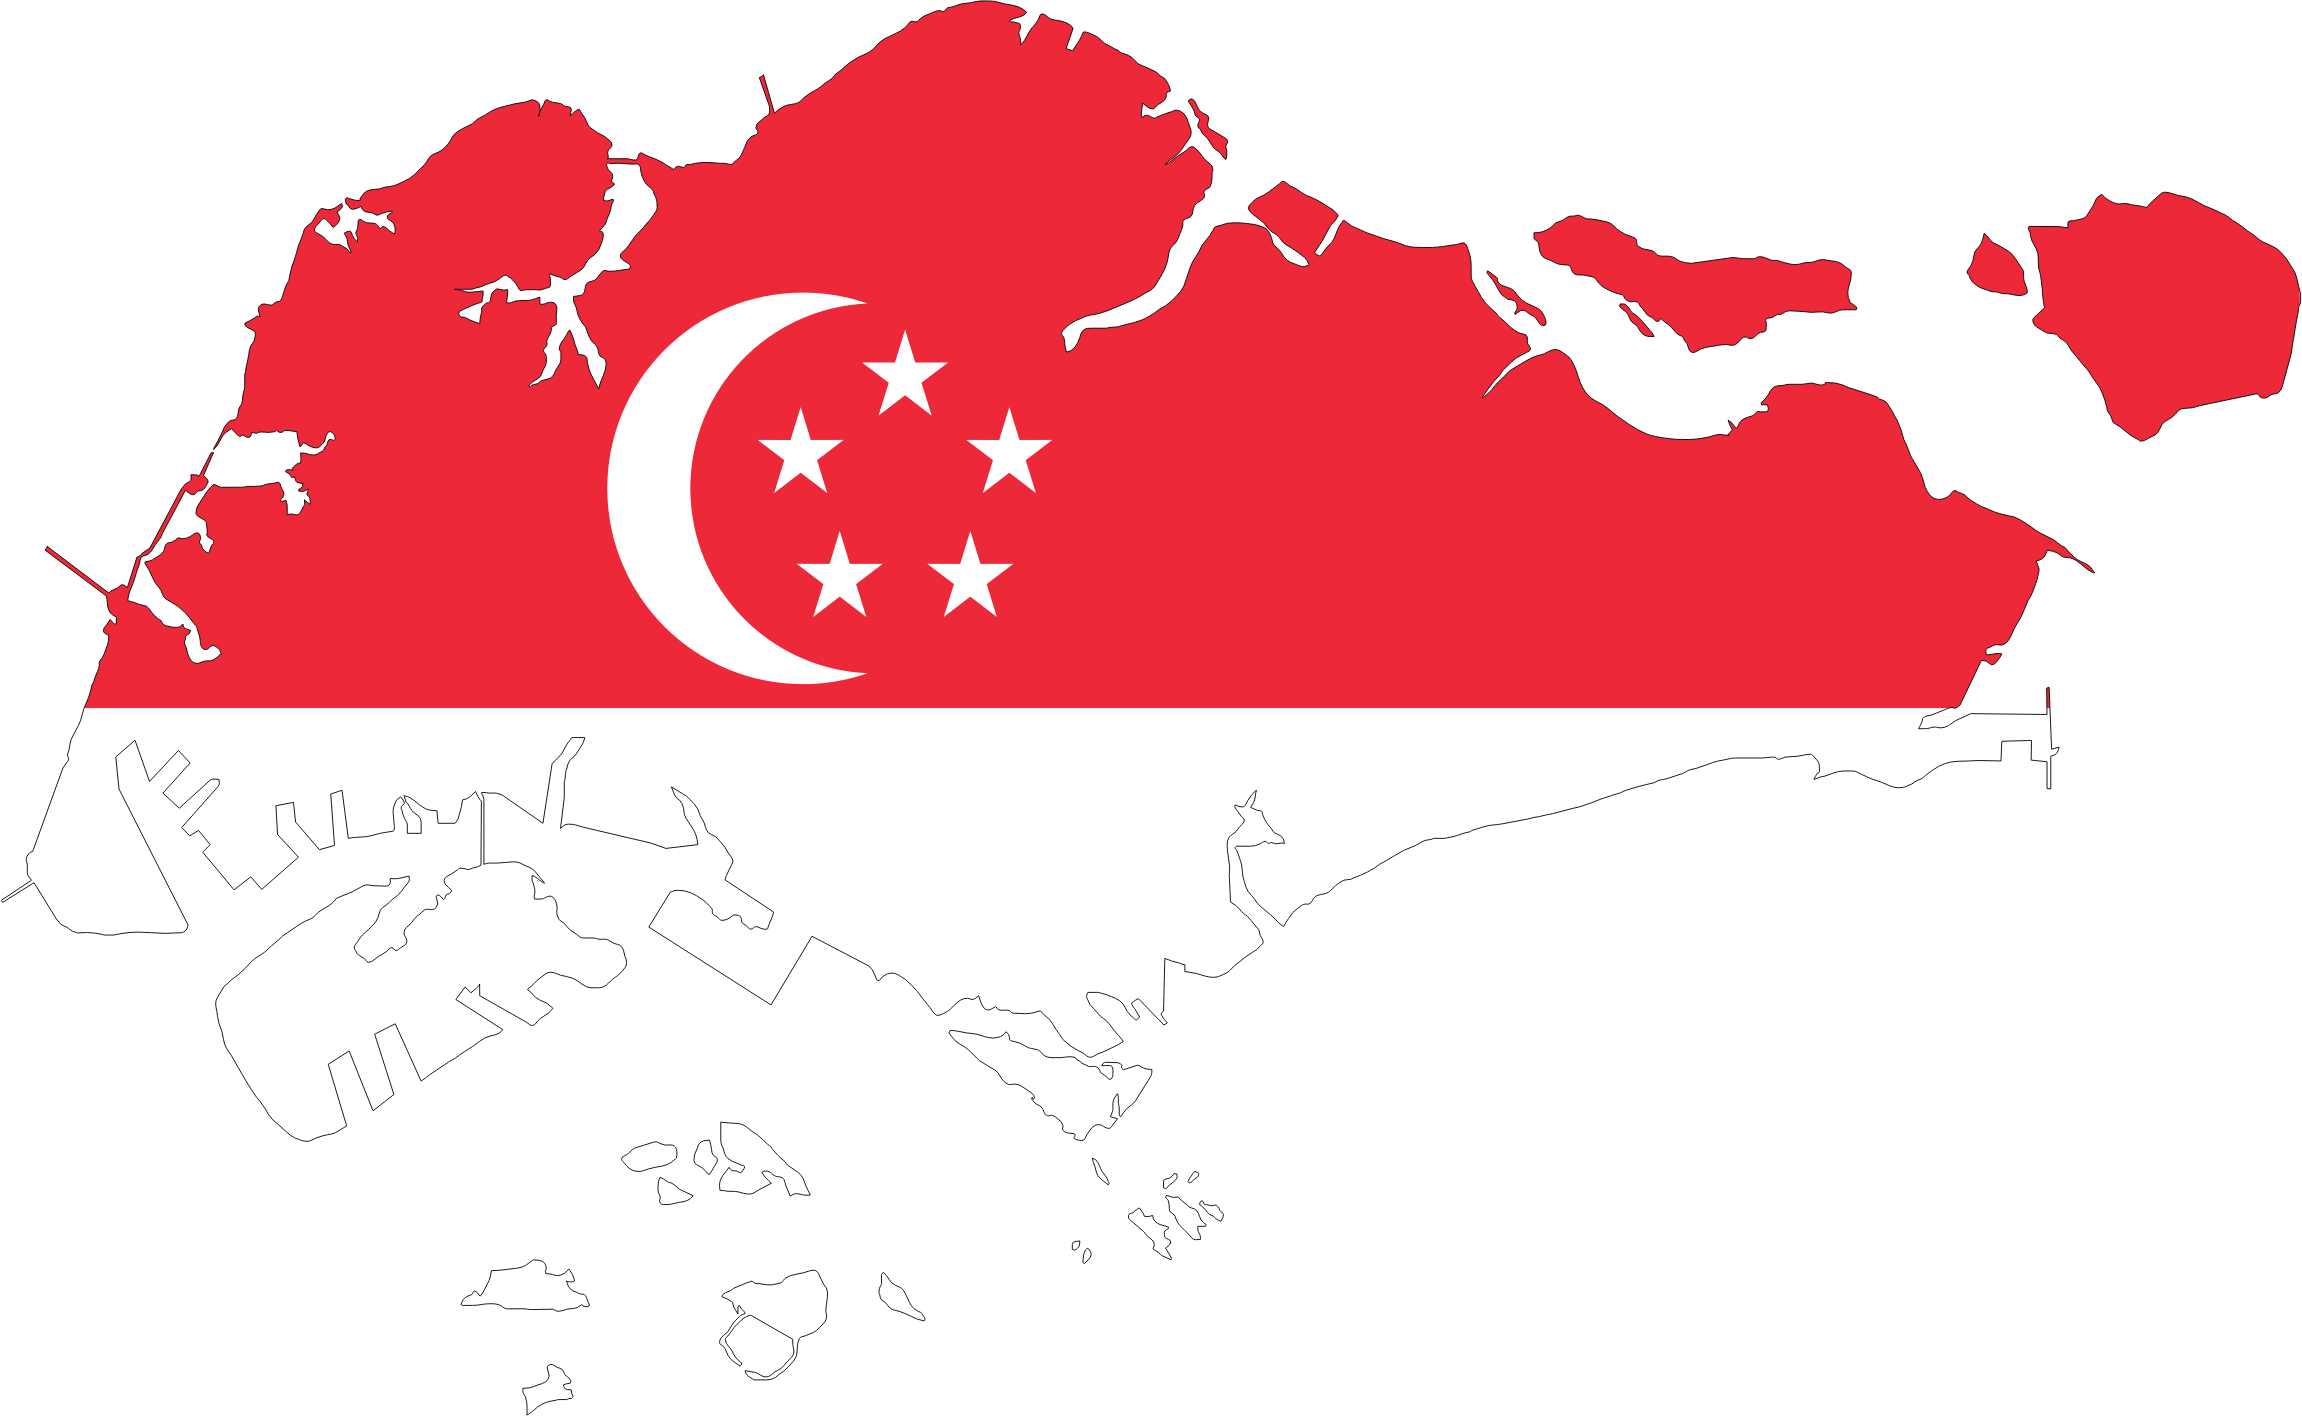 Singapore clipart #17, Download drawings